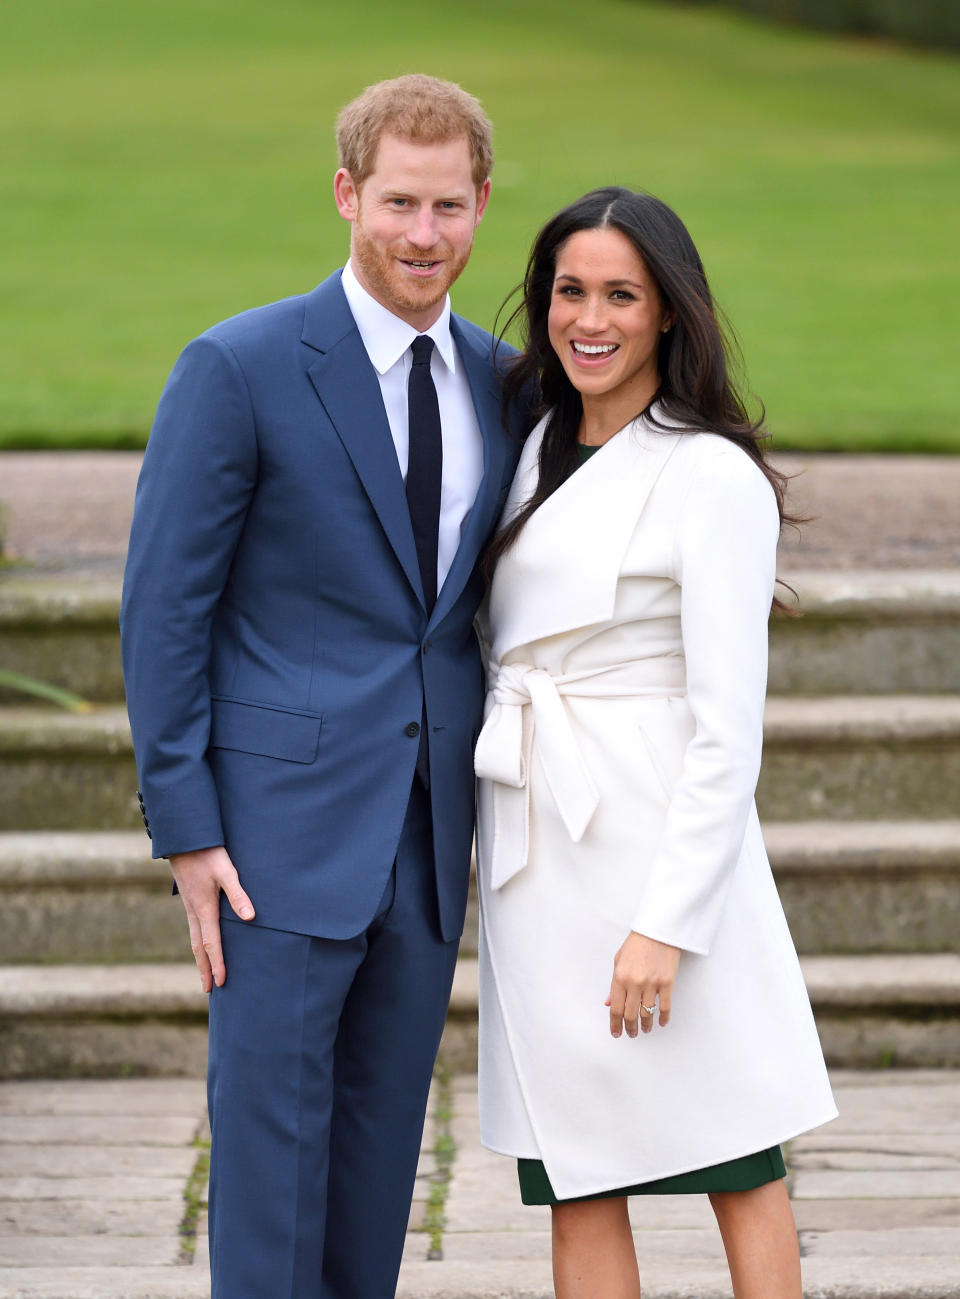 LONDON, ENGLAND - NOVEMBER 27:  (EMBARGOED FOR PUBLICATION IN UK NEWSPAPERS UNTIL 24 HOURS AFTER CREATE DATE AND TIME) Prince Harry and Meghan Markle attend an official photocall to announce the engagement of Prince Harry and actress Meghan Markle at The Sunken Gardens at Kensington Palace on November 27, 2017 in London, England.  Prince Harry and Meghan Markle have been a couple officially since November 2016 and are due to marry in Spring 2018.  (Photo by Karwai Tang/WireImage)